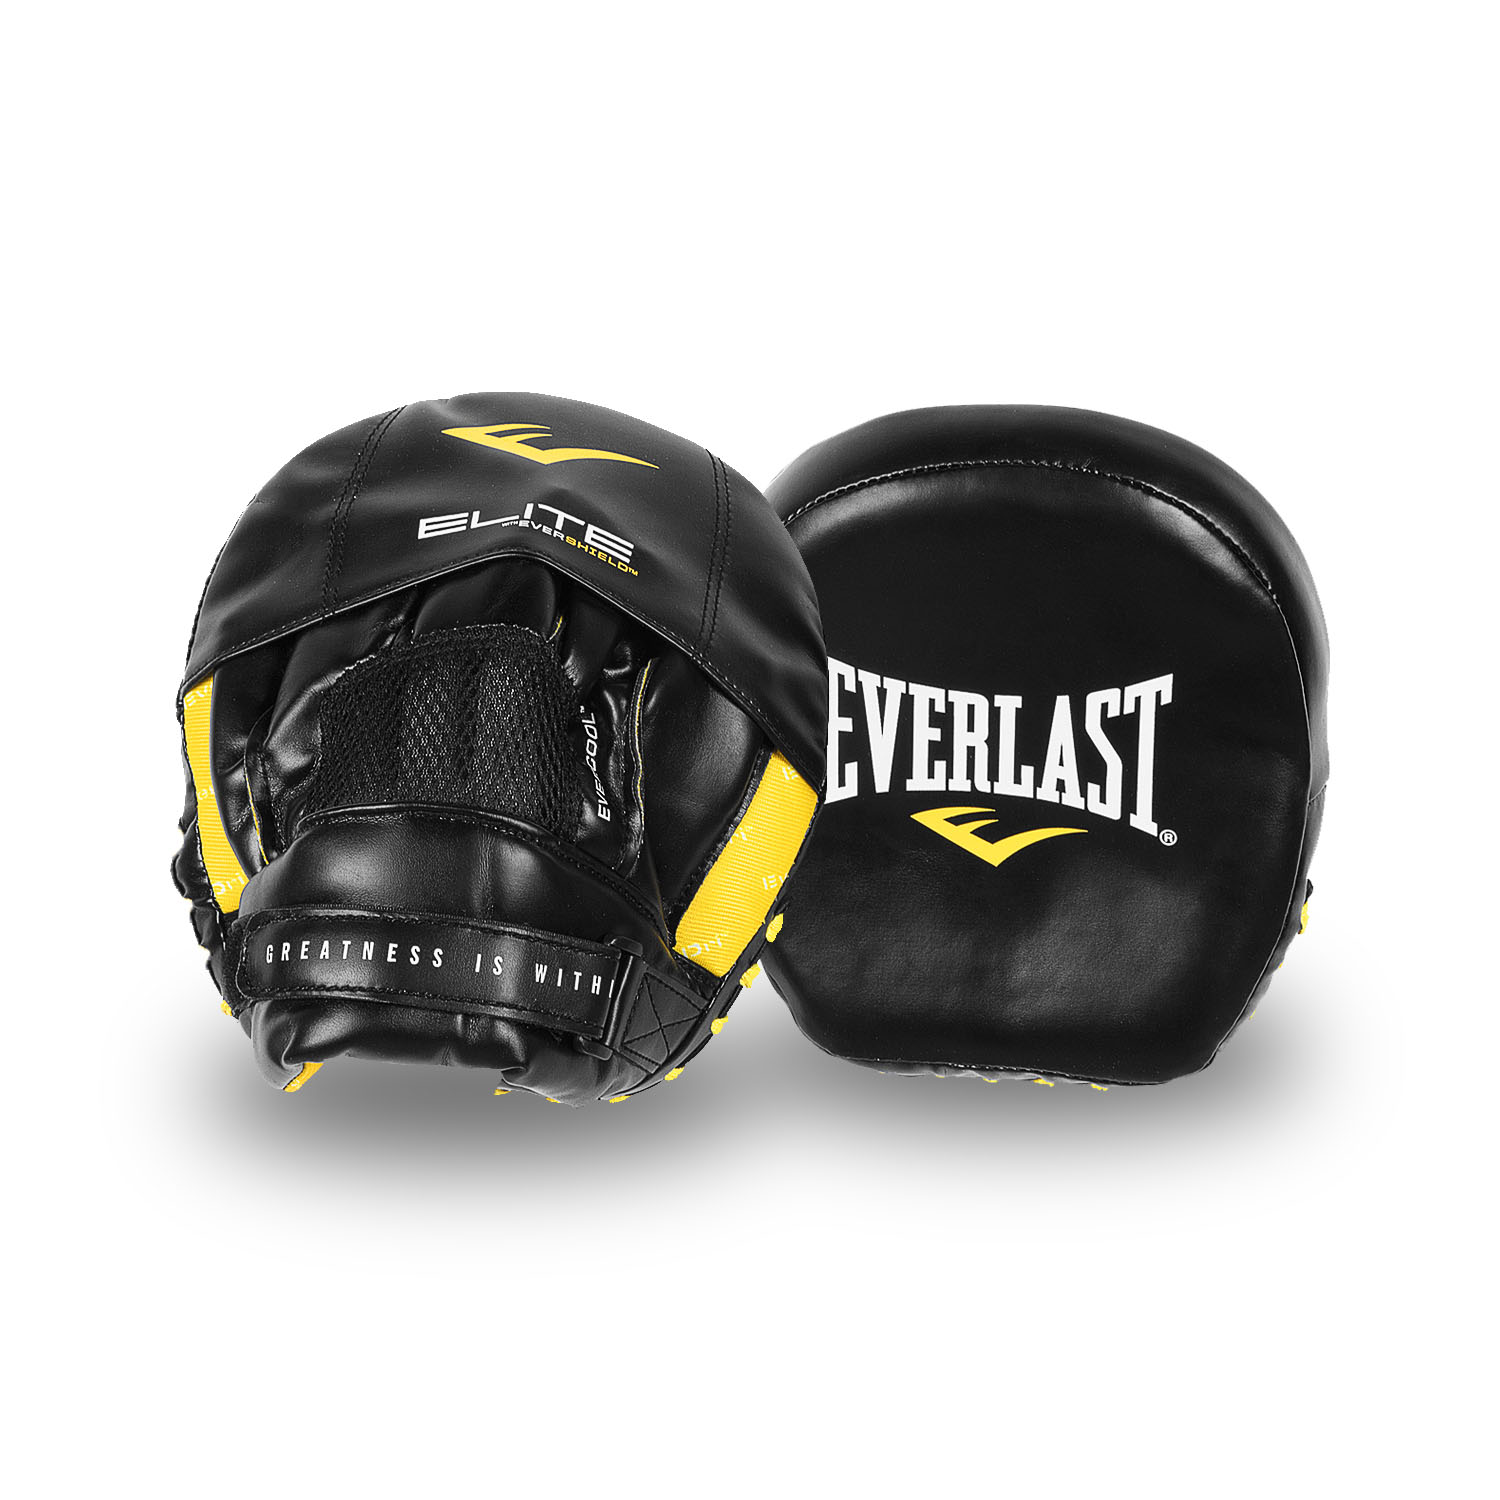 картинка Лапы Everlast Elite Mini PU от магазина Everlast в России